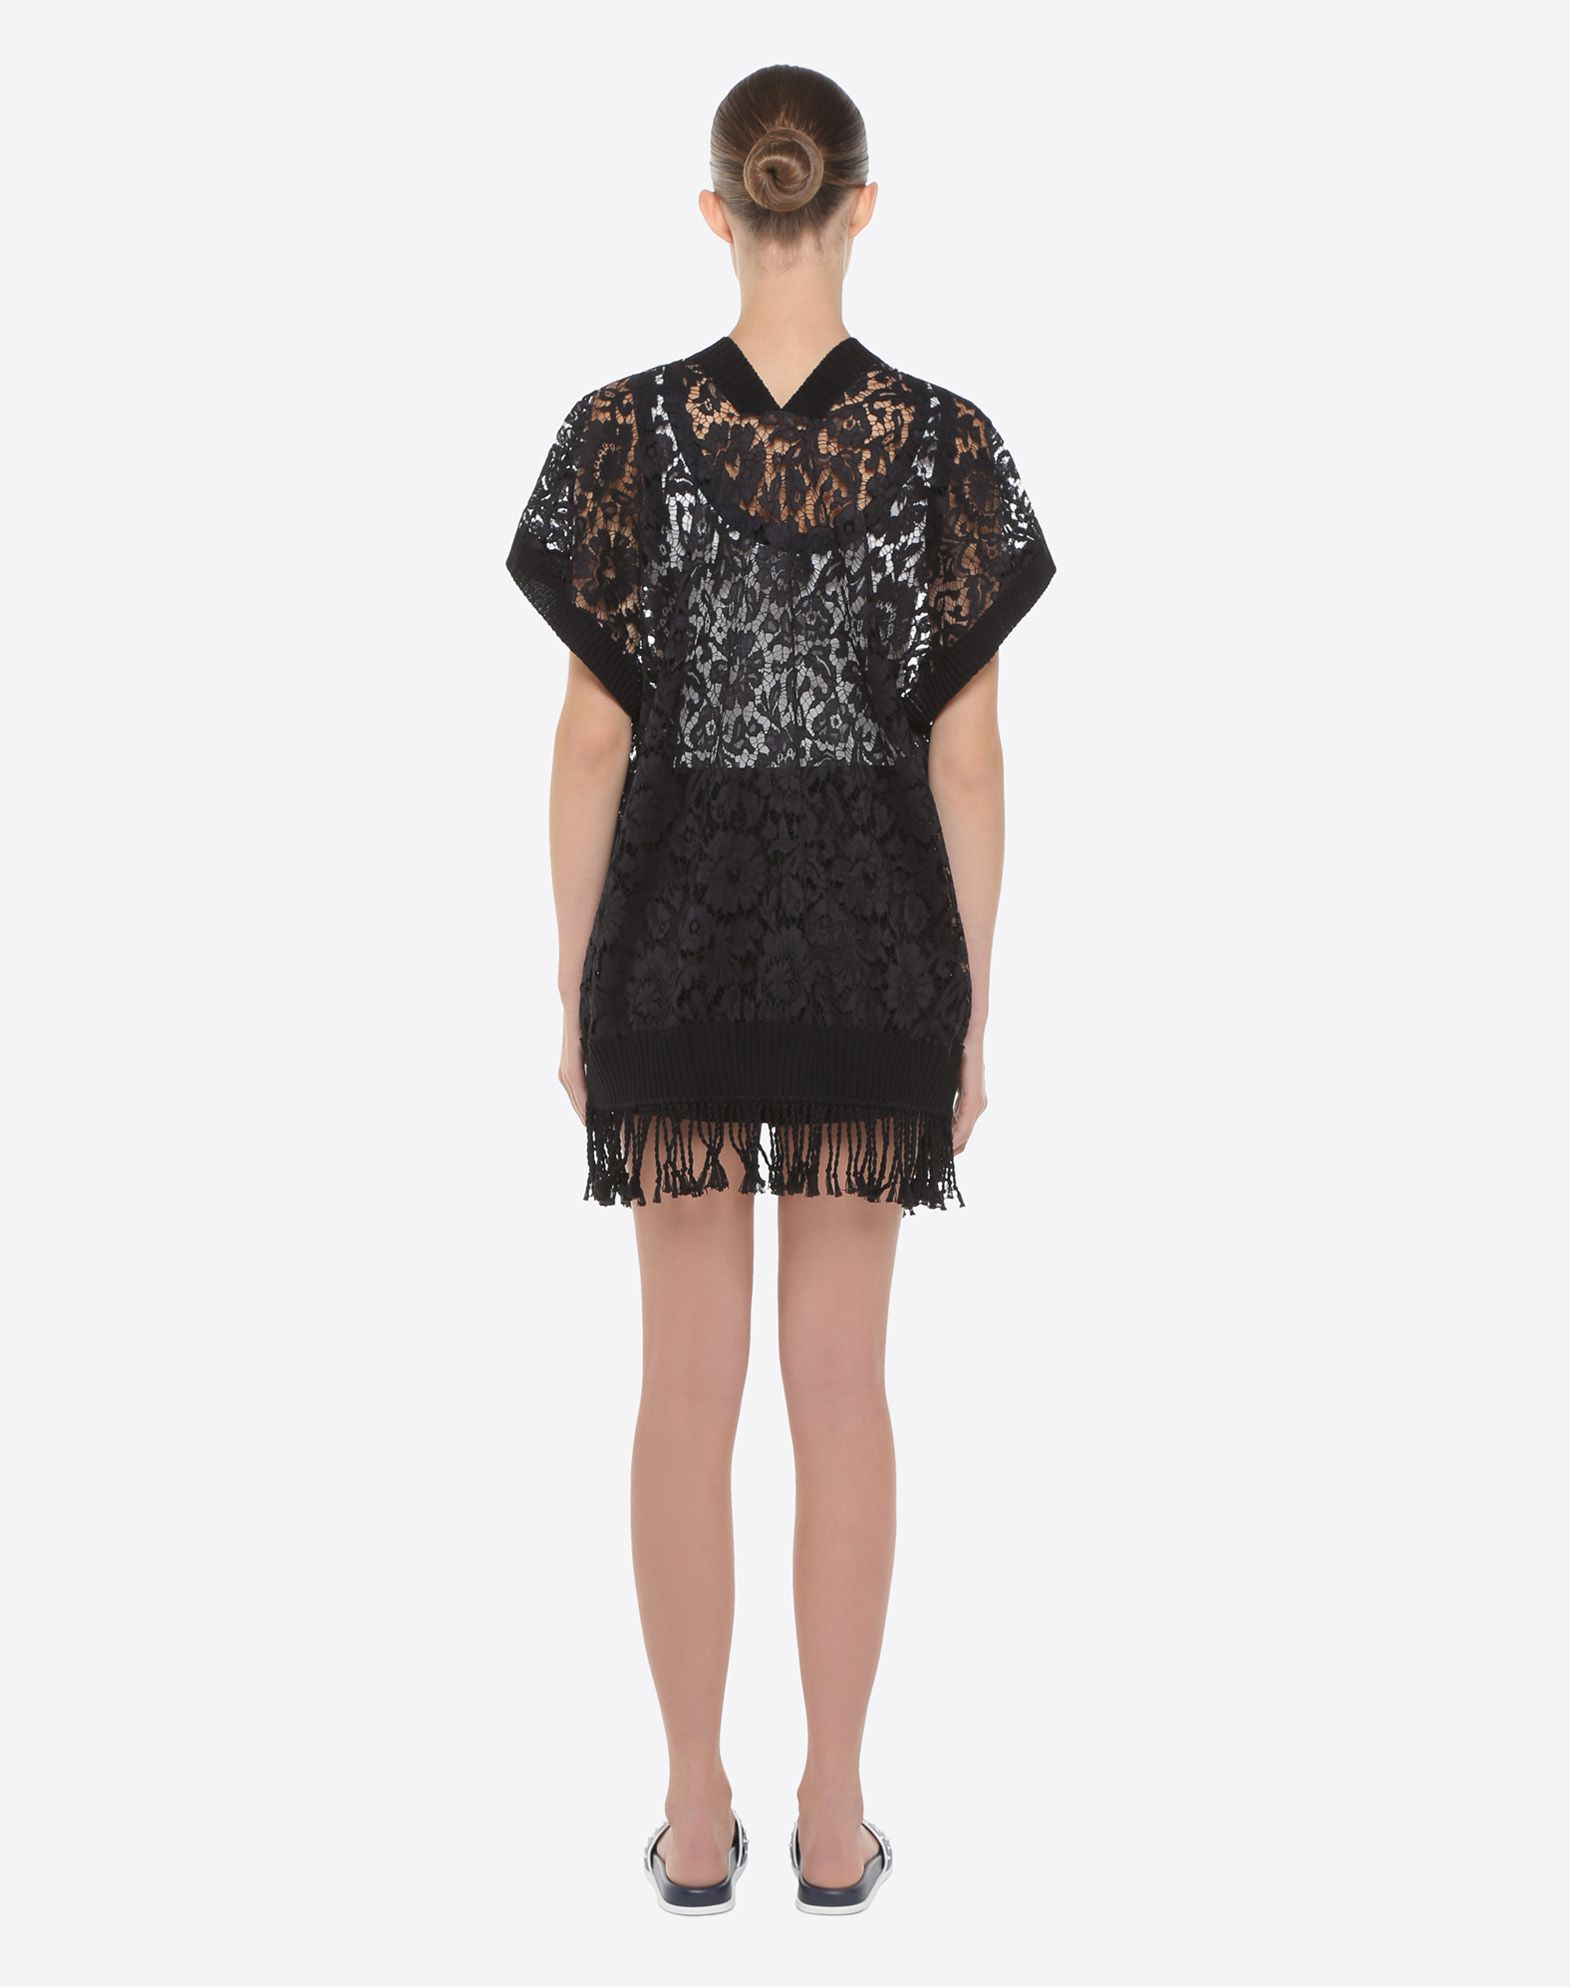 VALENTINO Lace Fringe Solid colour Deep neckline Short sleeves  12118352lw